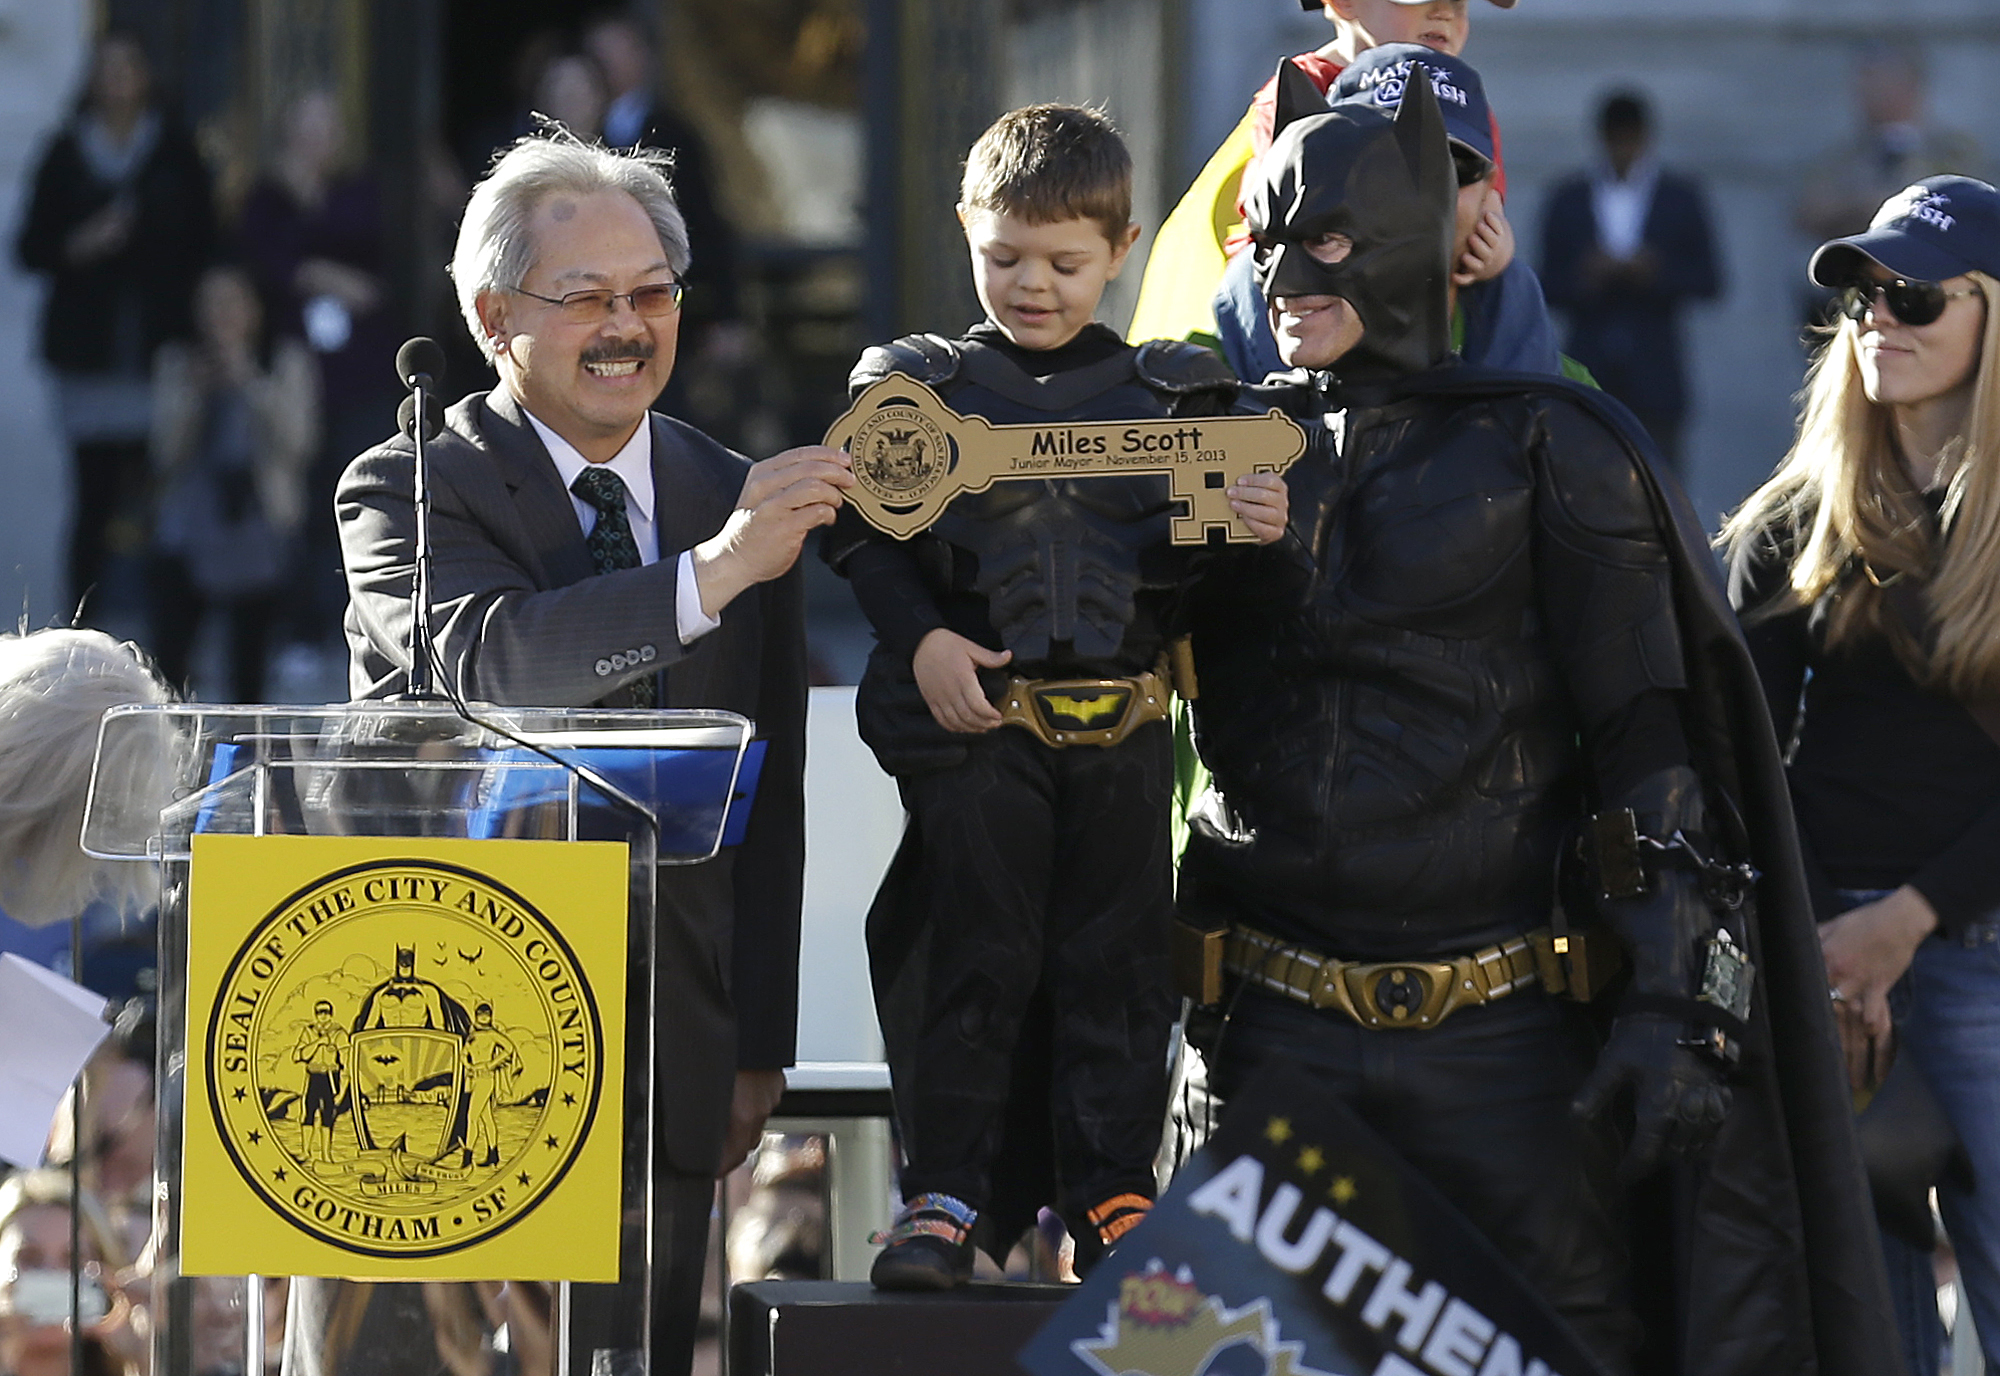 <div class='meta'><div class='origin-logo' data-origin='none'></div><span class='caption-text' data-credit='Jeff Chiu/AP Photo'>''Batkid',' 5-year-old leukemia patient Miles Scott, stands next to Batman as he receives the key to the city from Mayor Ed Lee, at a rally outside of City Hall Nov. 15, 2013.</span></div>